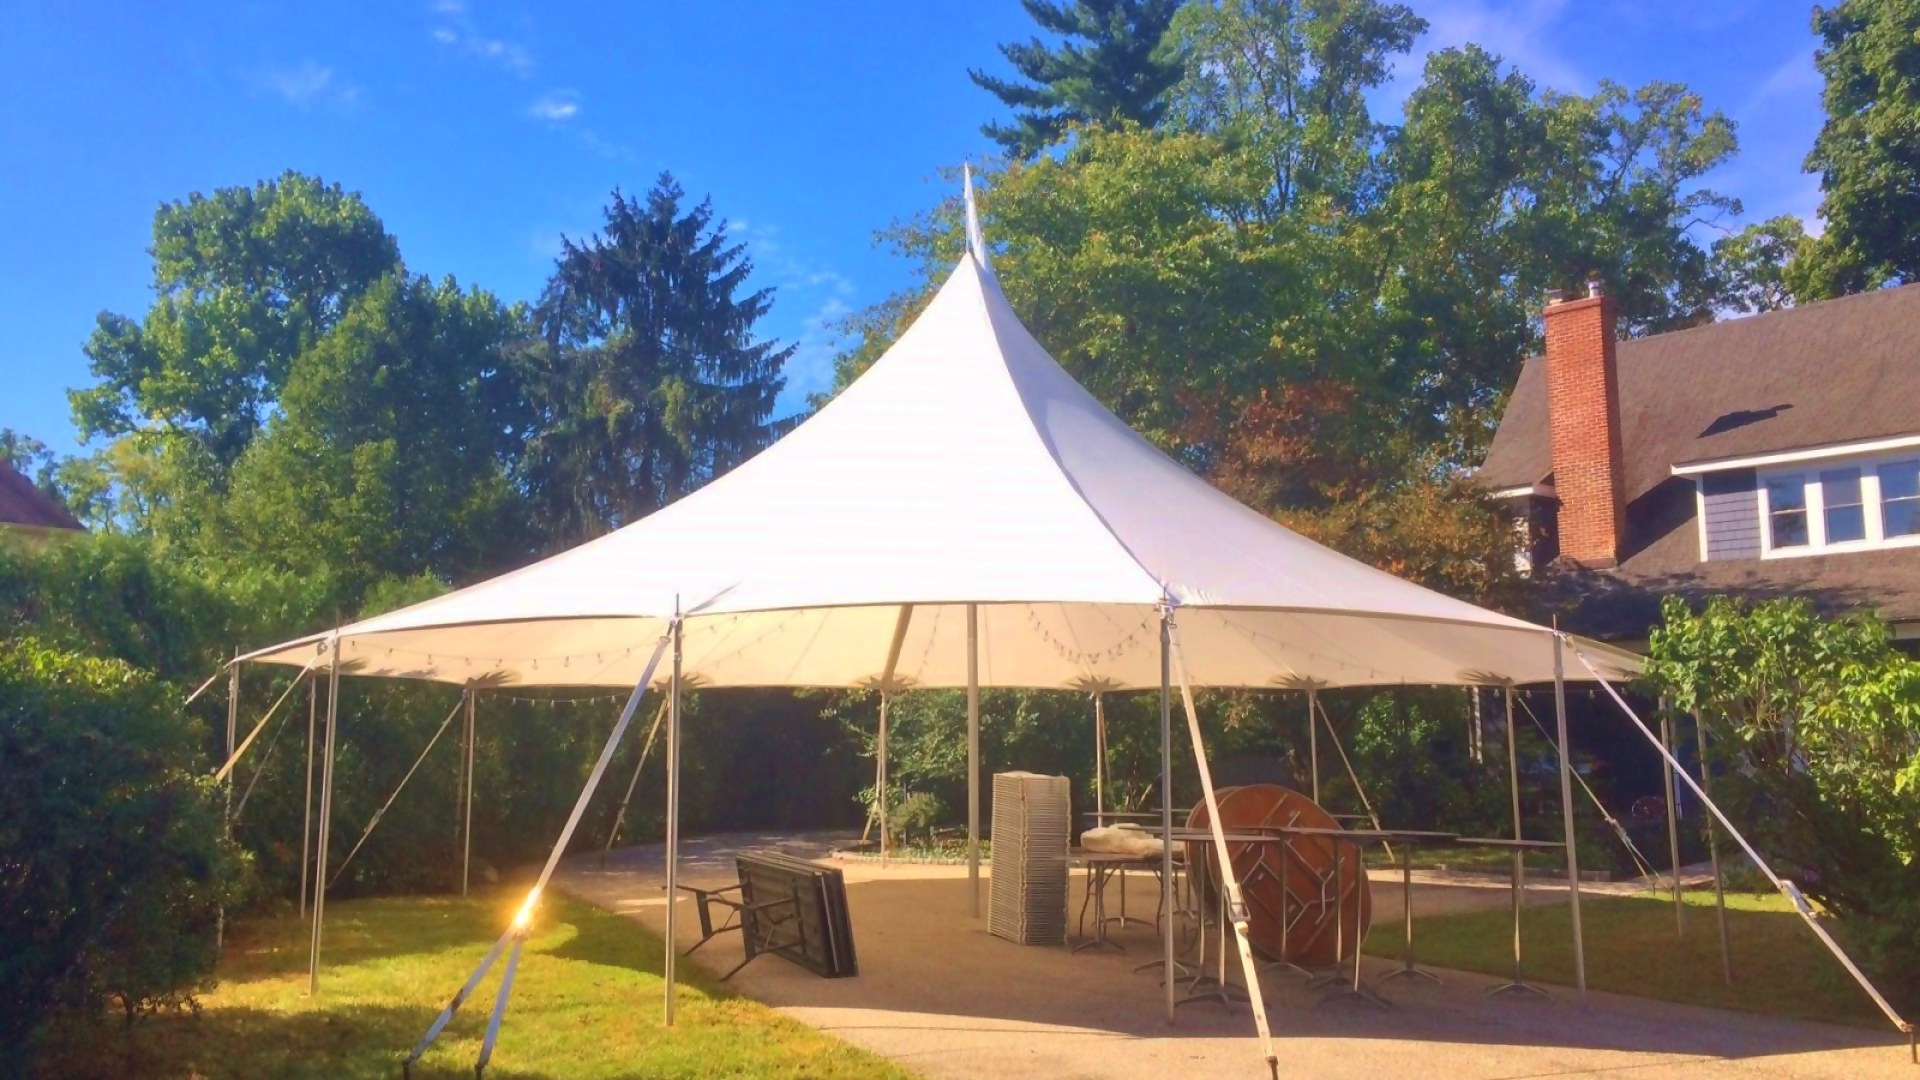 Gorgeous Sailcloth tent for rent in Myerstown, PA